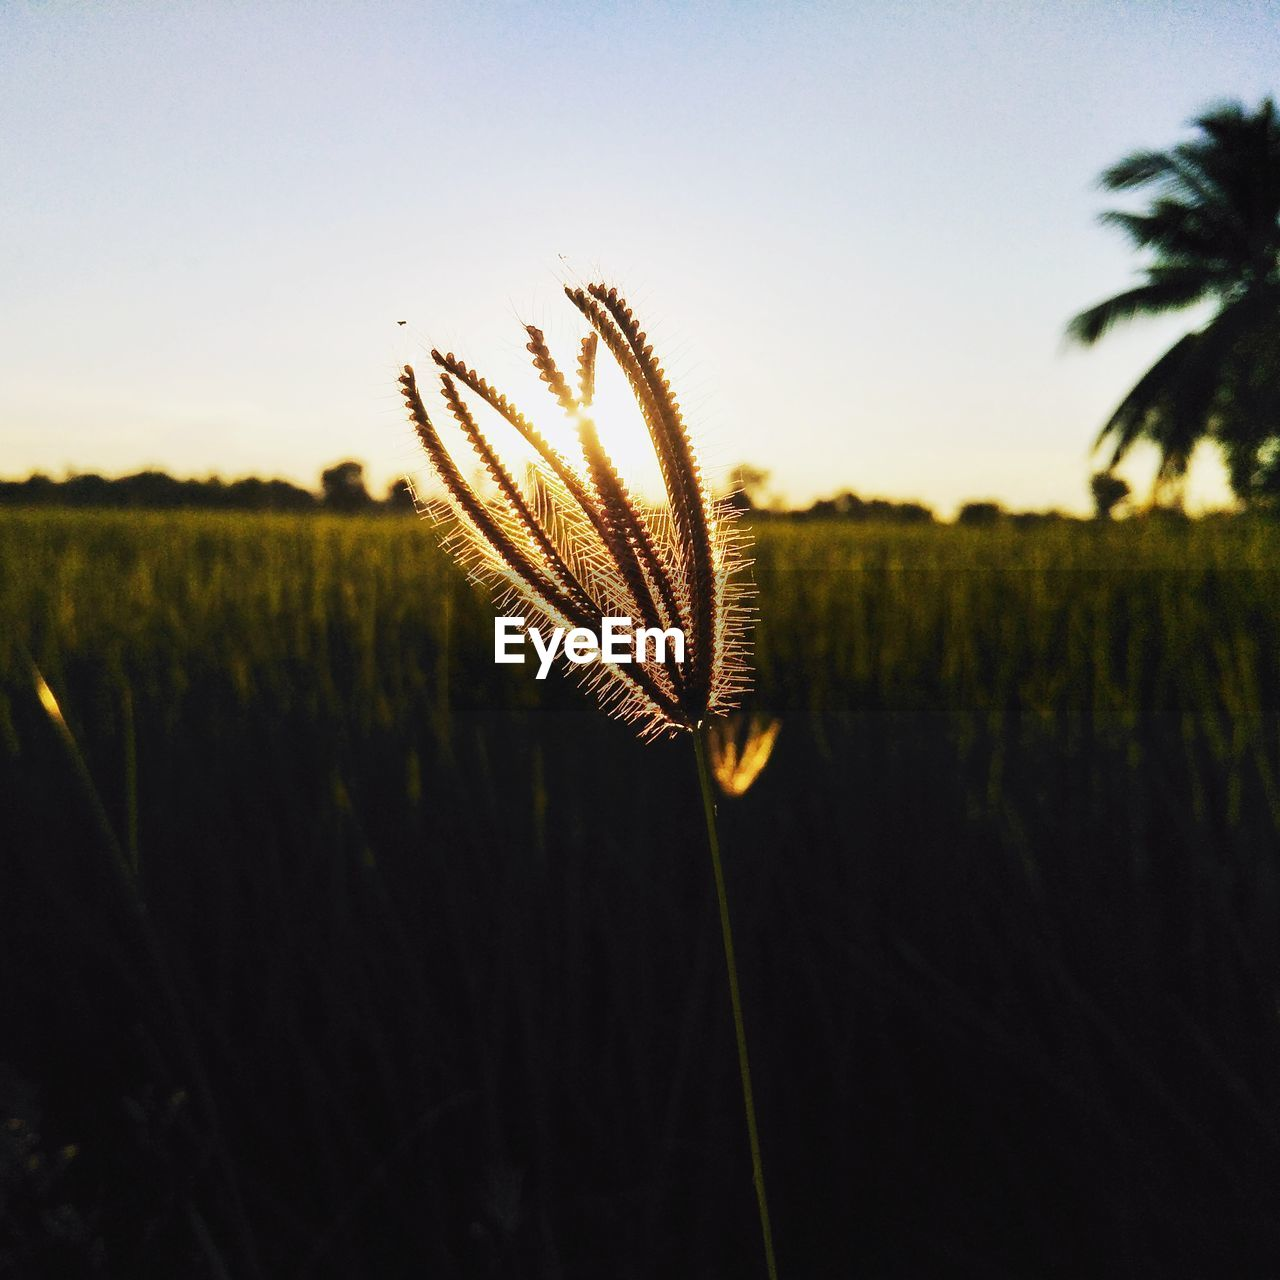 growth, plant, beauty in nature, sky, nature, field, focus on foreground, no people, tranquility, close-up, land, tranquil scene, outdoors, sunset, scenics - nature, agriculture, day, landscape, environment, plant stem, stalk